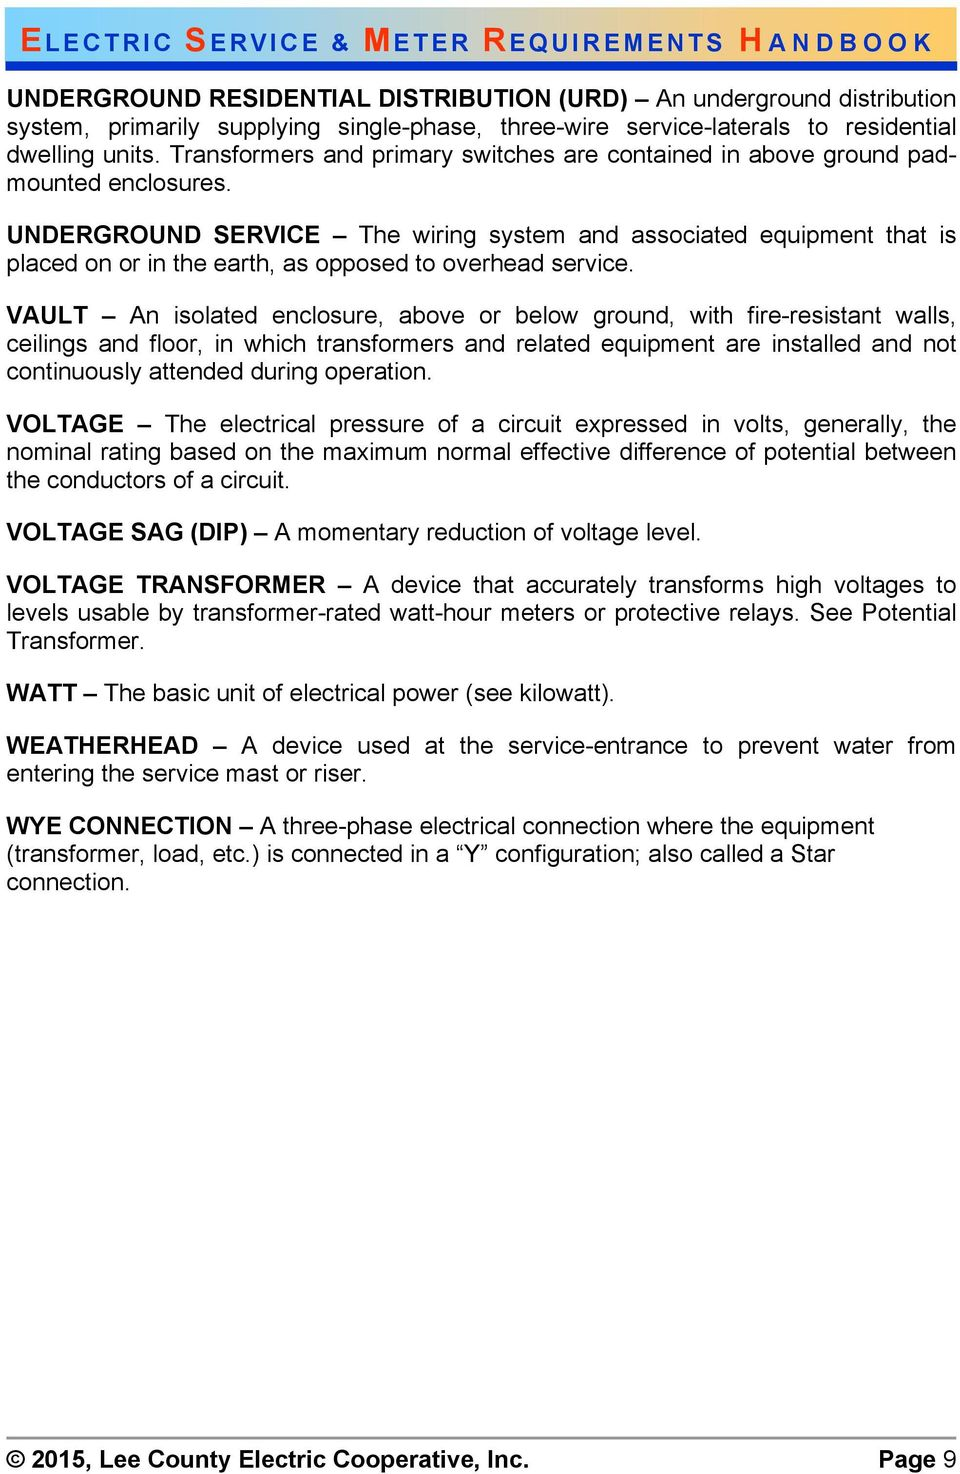 Electric Service And Meter Requirements Pdf Residential Wiring Voltage Underground The System Associated Equipment That Is Placed On Or In Earth